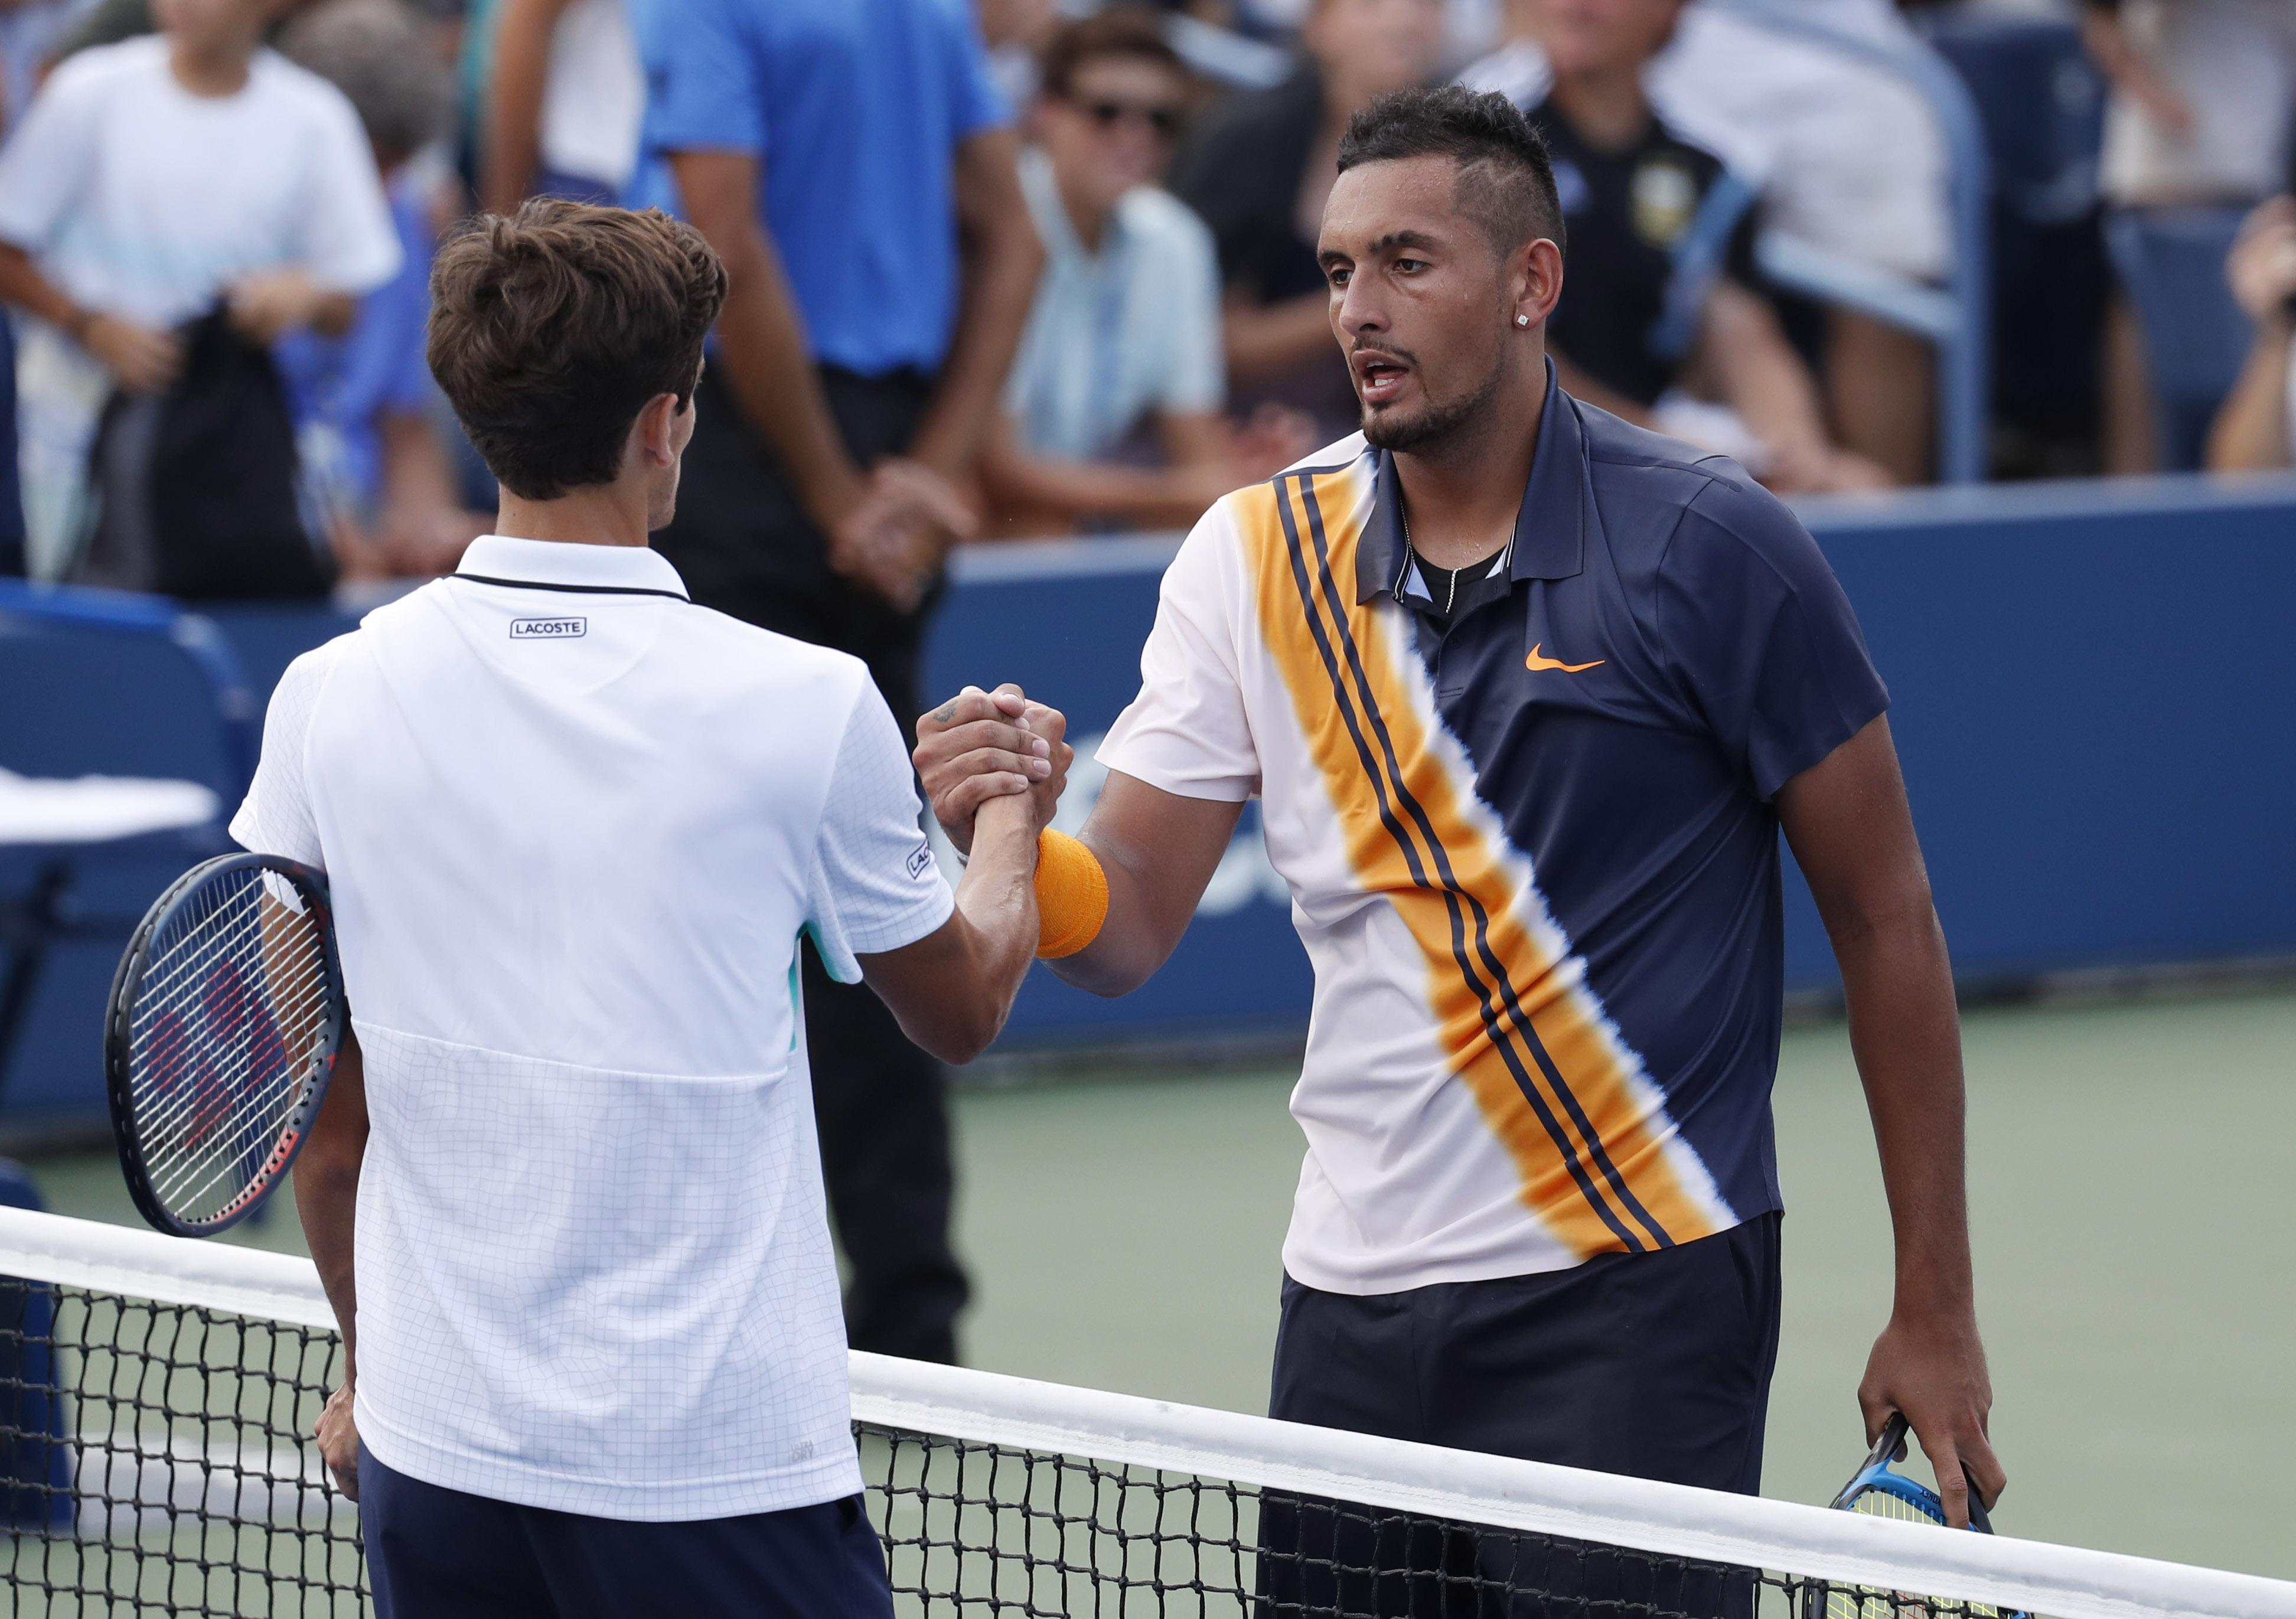 Nick Kyrgios came from a set down to defeat Pierre-Hughes Herbert at the US Open